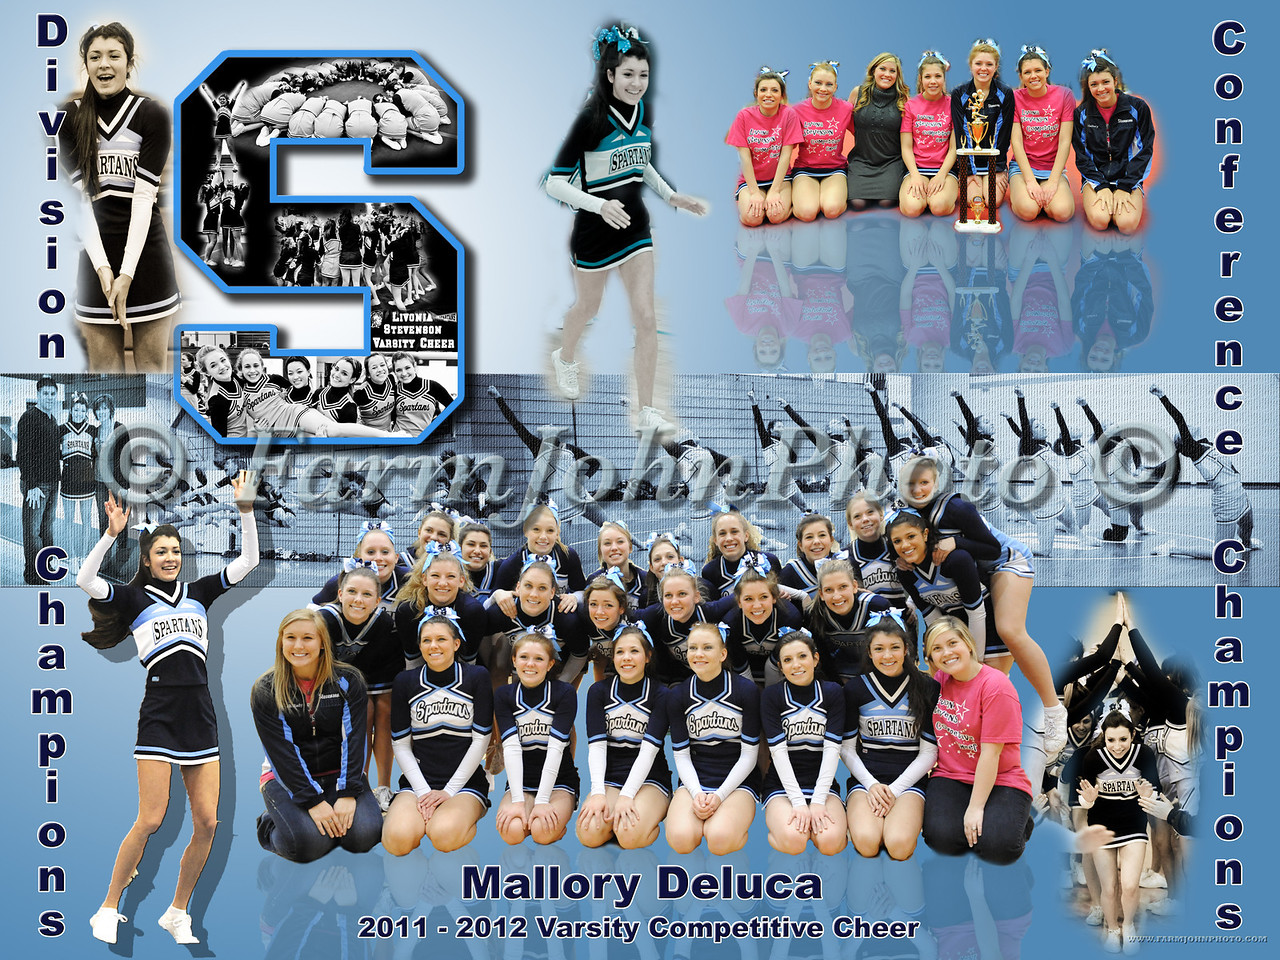 Mallory Deluca 24 x 18 Format Proof 1